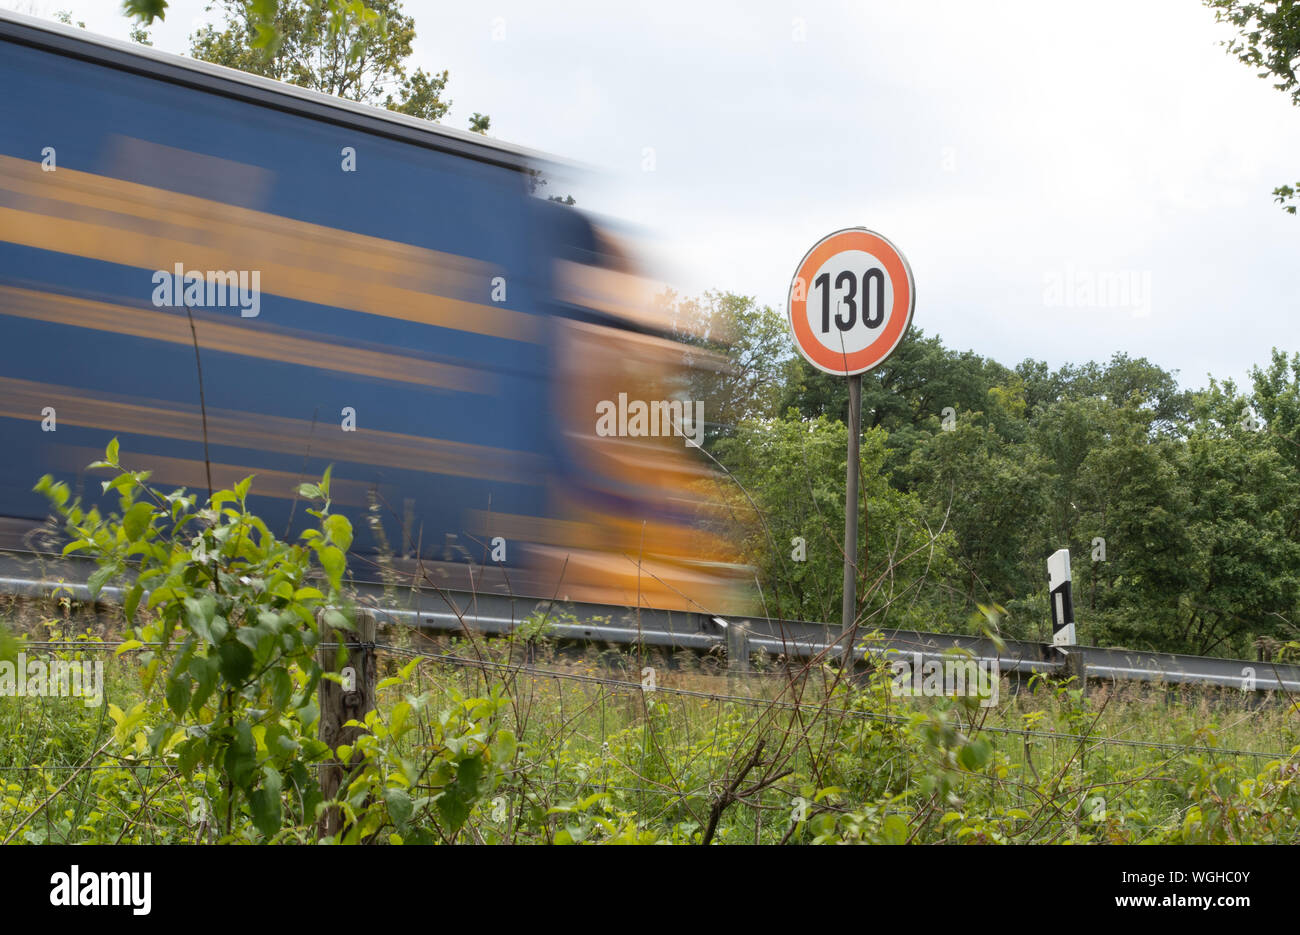 speed limit sign 130 at autobahn, highway Germany Stock Photo